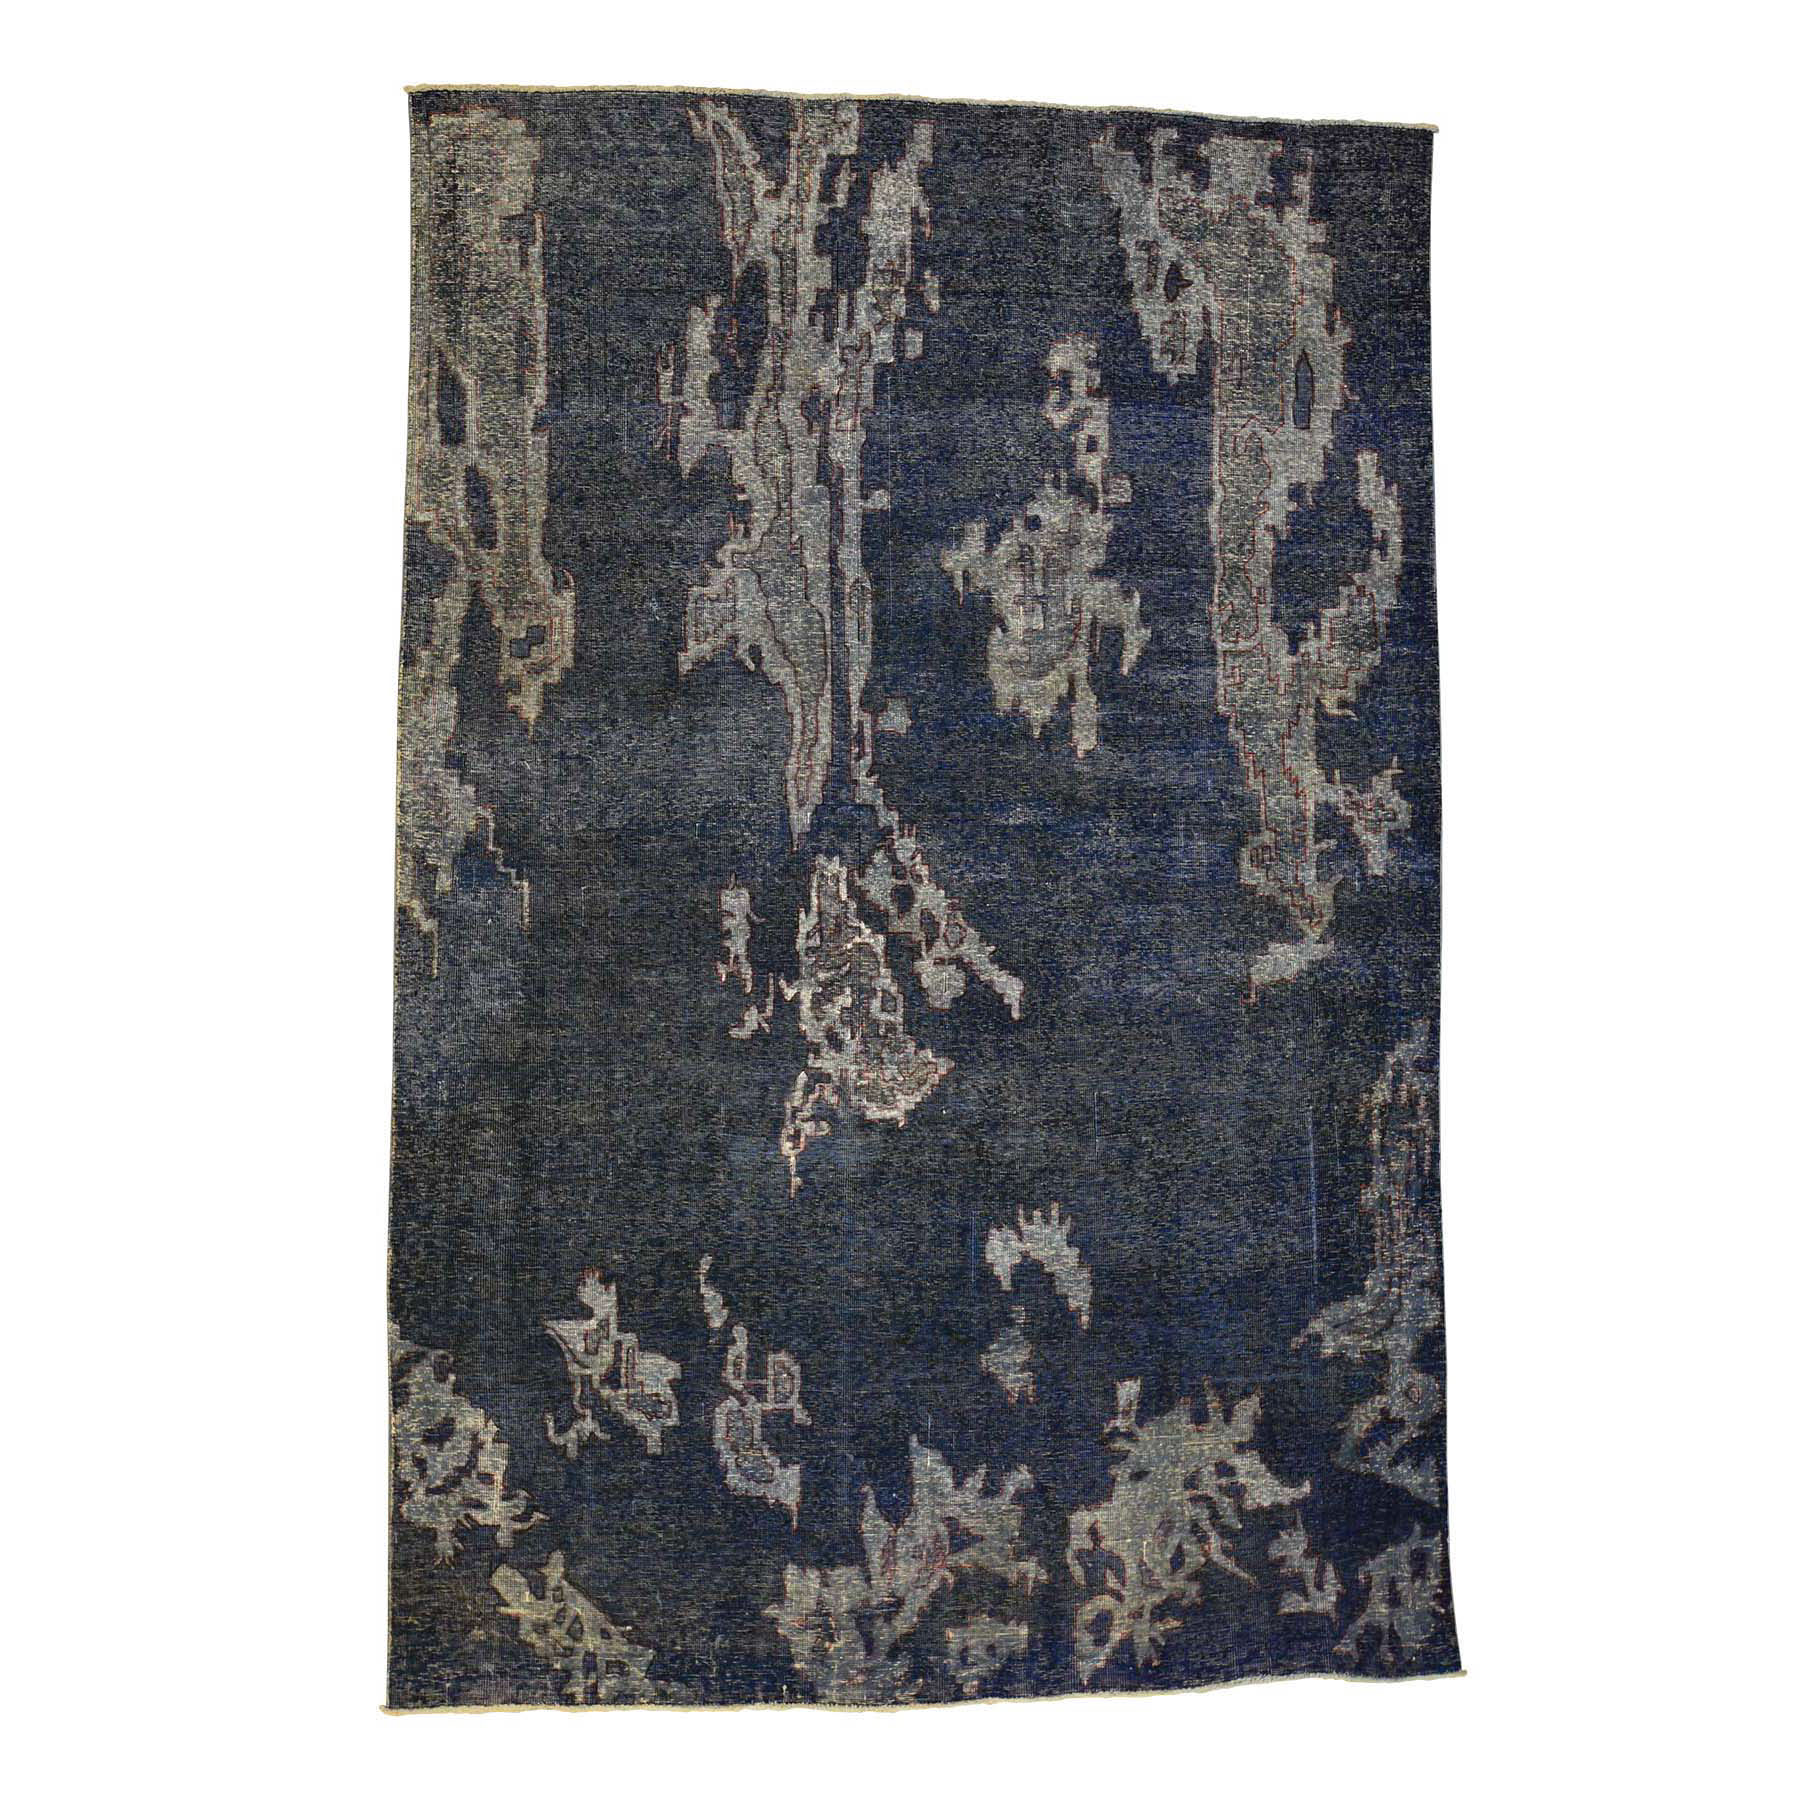 6'5''x9'5'' Hand Woven Grey Persian Overdyed Worn Oriental Rug